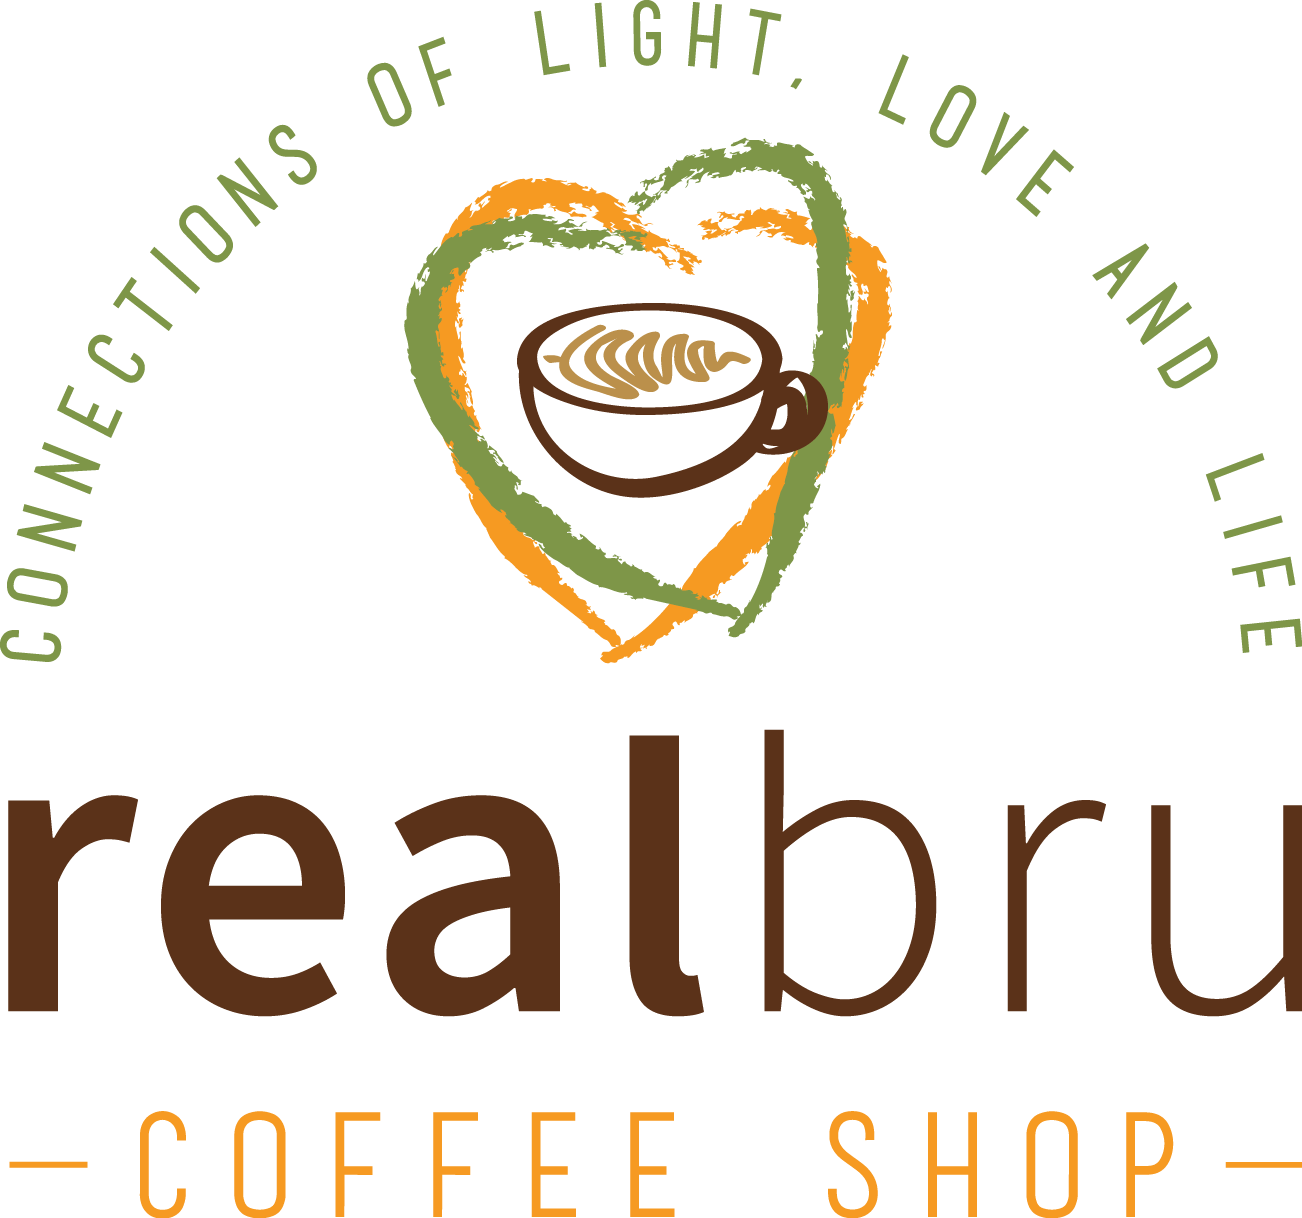 Create a fun and interesting brand for a different kind of coffee shop